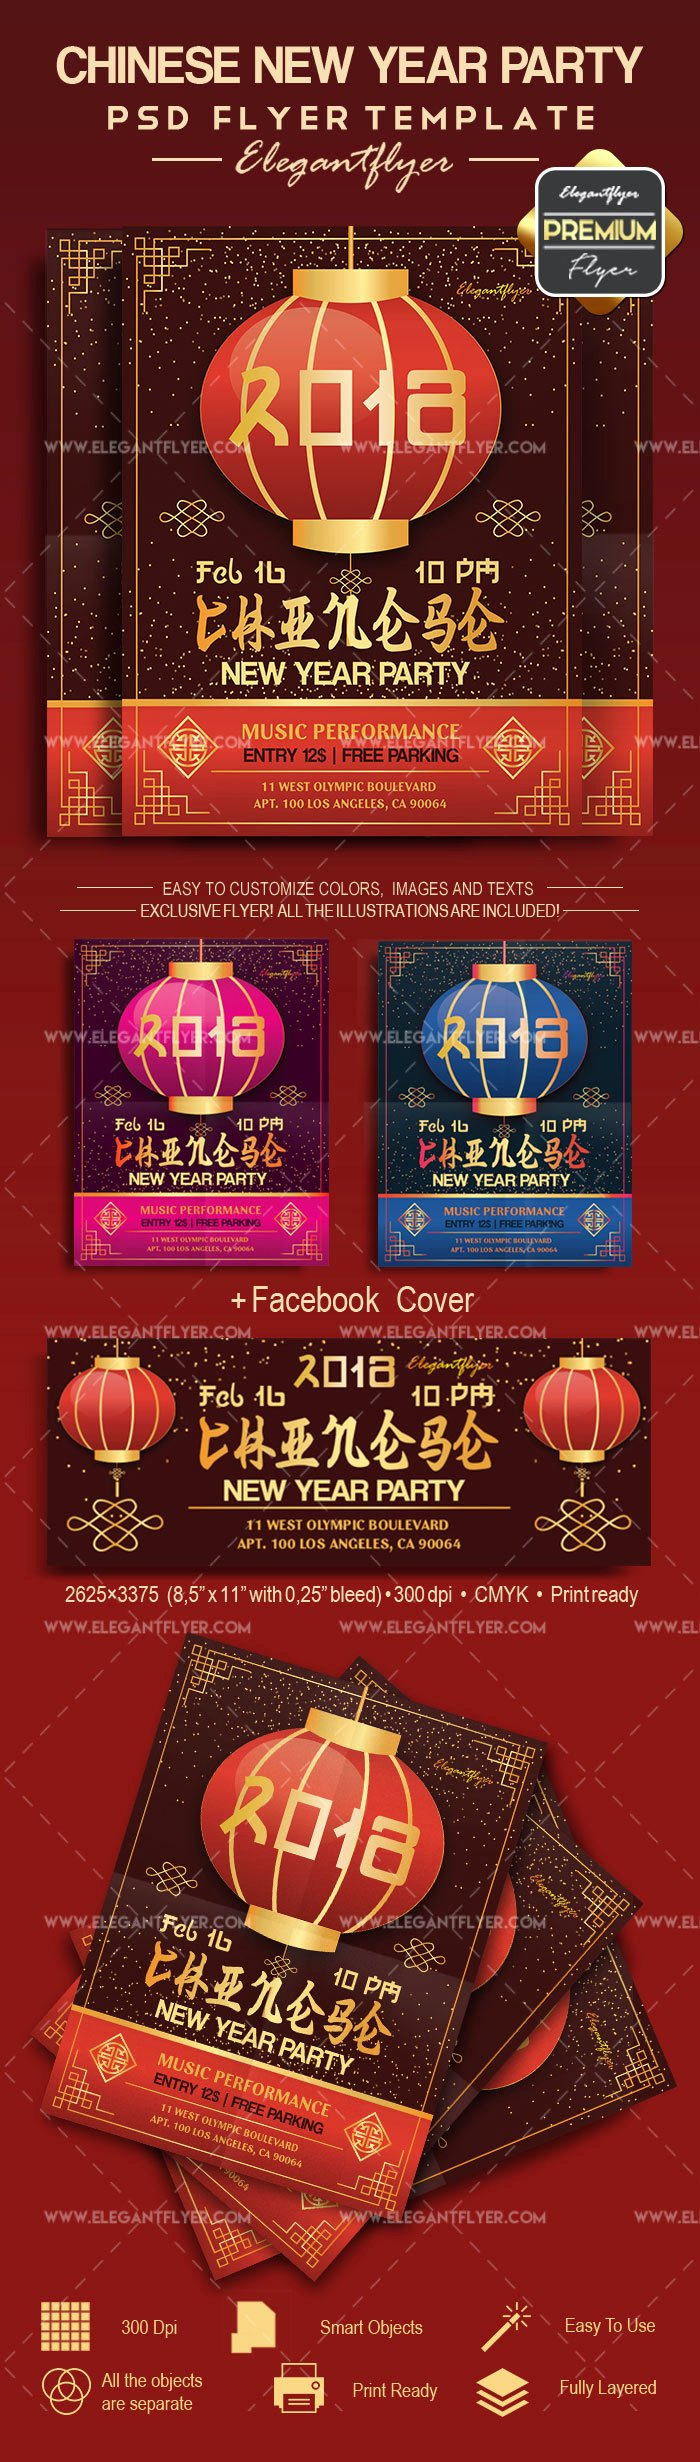 New Year Flyers Template Lovely Chinese New Year Flyer Templates – by Elegantflyer